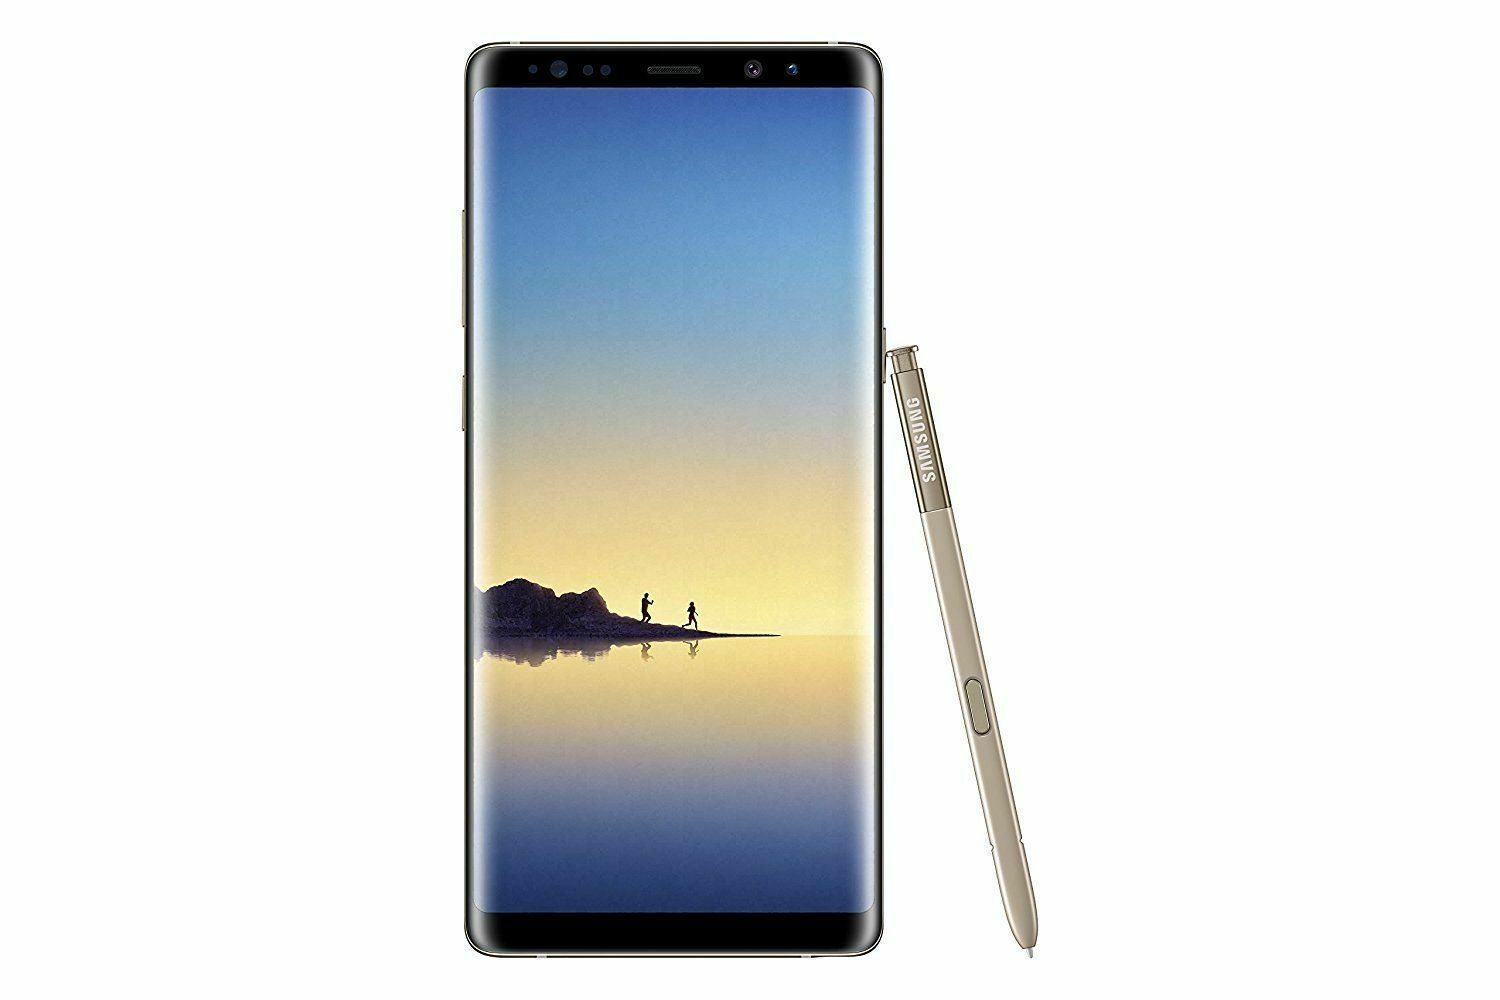 Samsung Galaxy Note 8 SM-N950 - 64GB - GSM Unlocked Smartphone 9/10